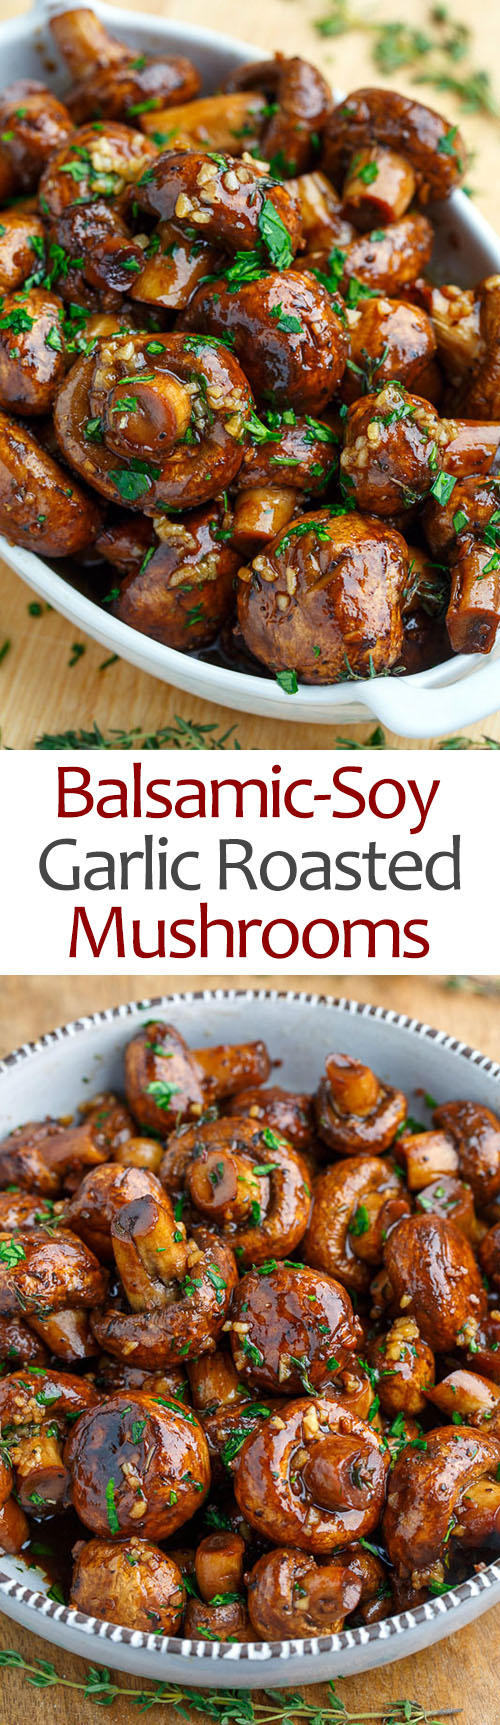 thyme and balsamic vinegar recipes roasted mushrooms with garlic thyme ...